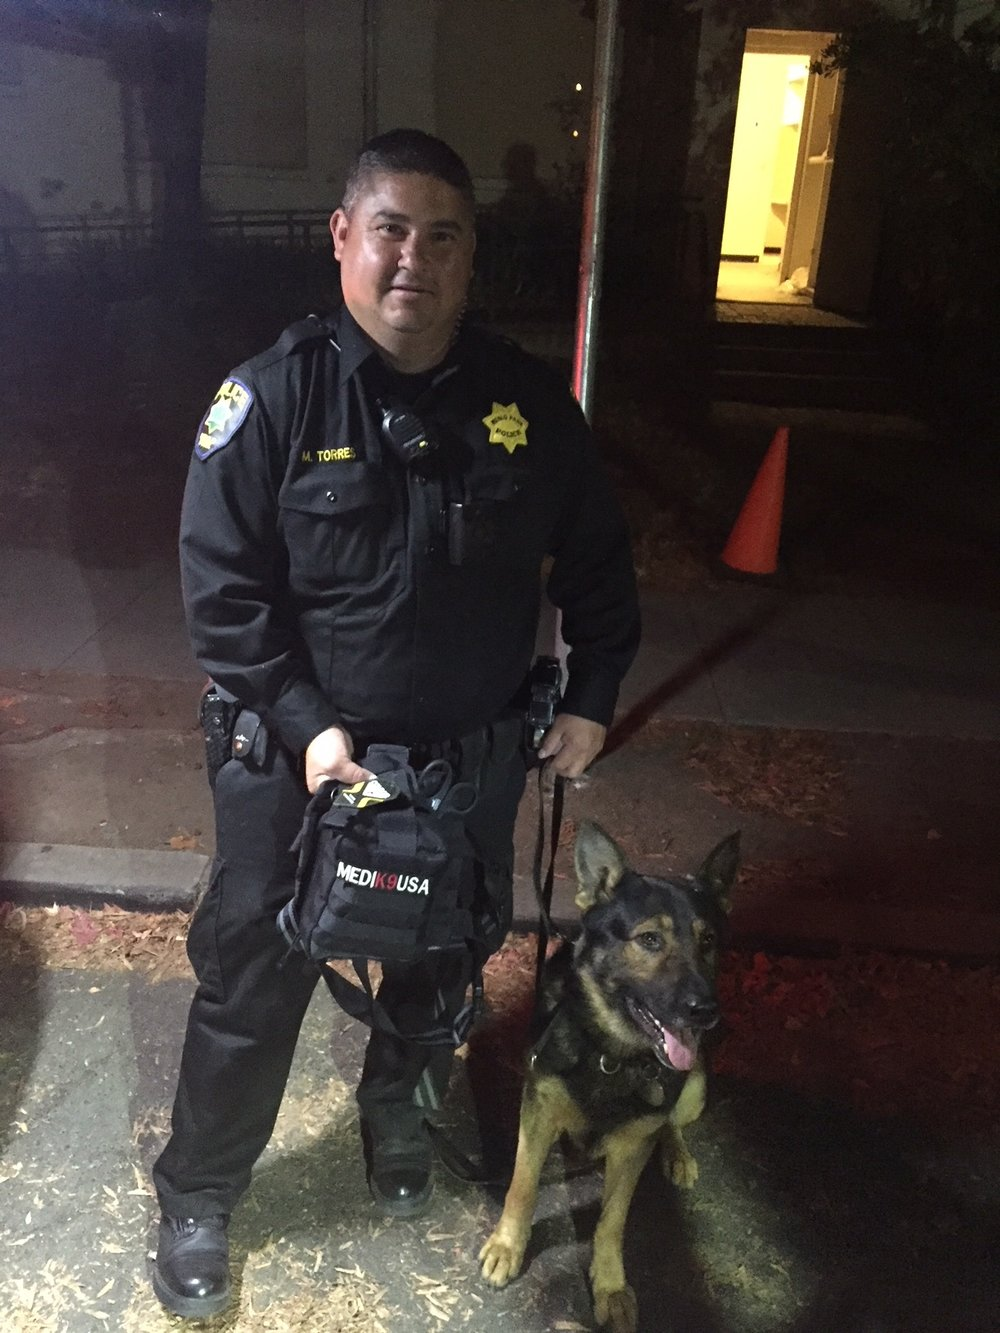 10/1/18 - K9 Hardy of the Menlo Park Police Department, Ca